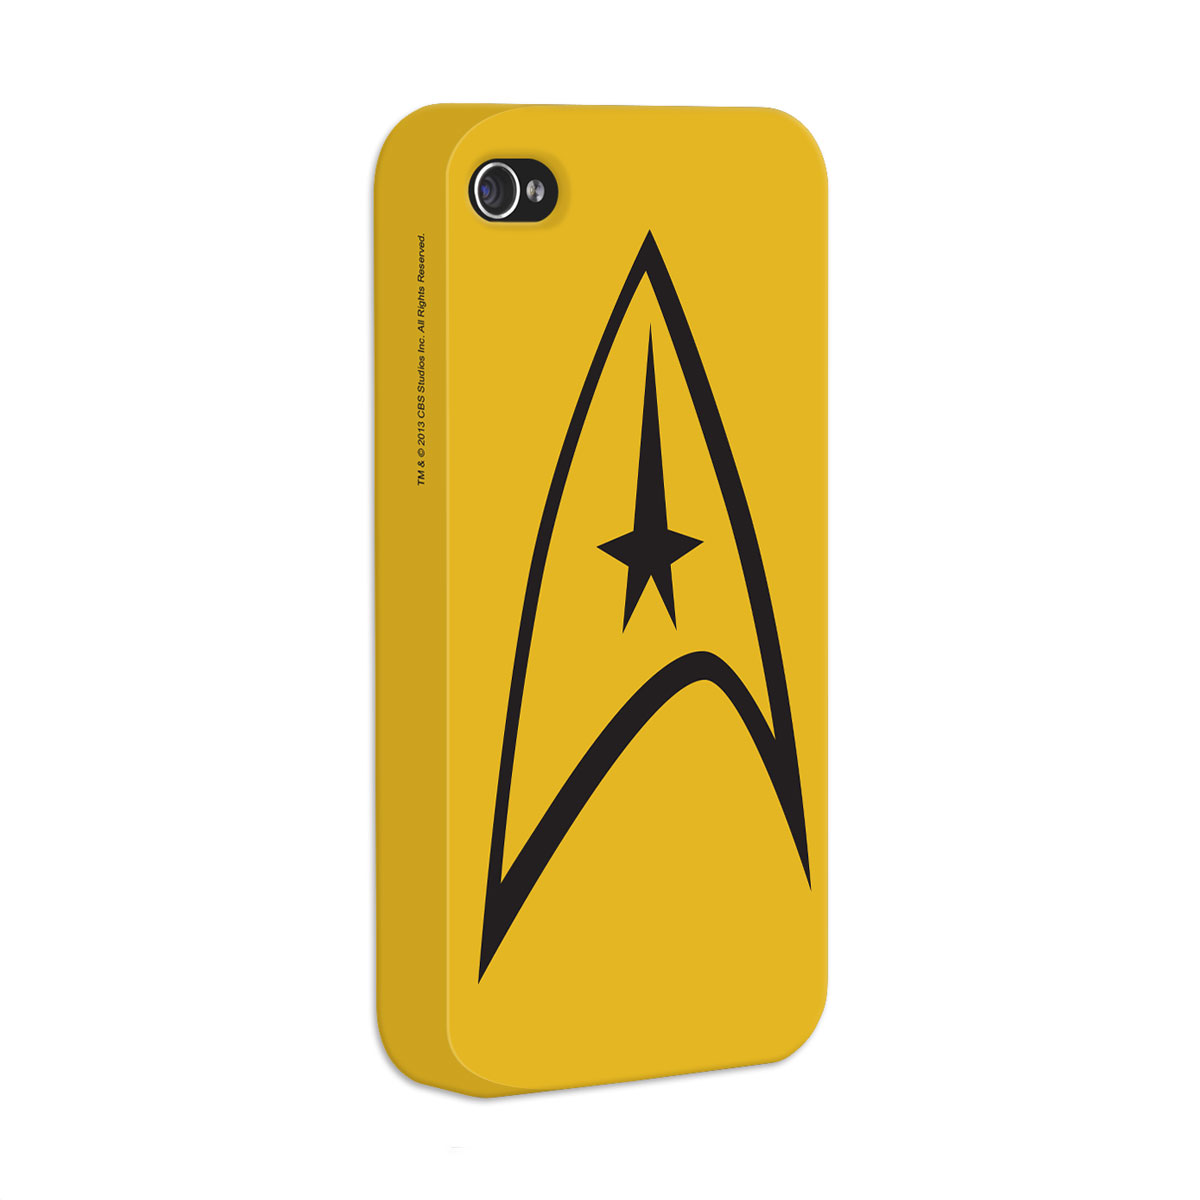 Capa de iPhone 4/4S Star Trek Yellow